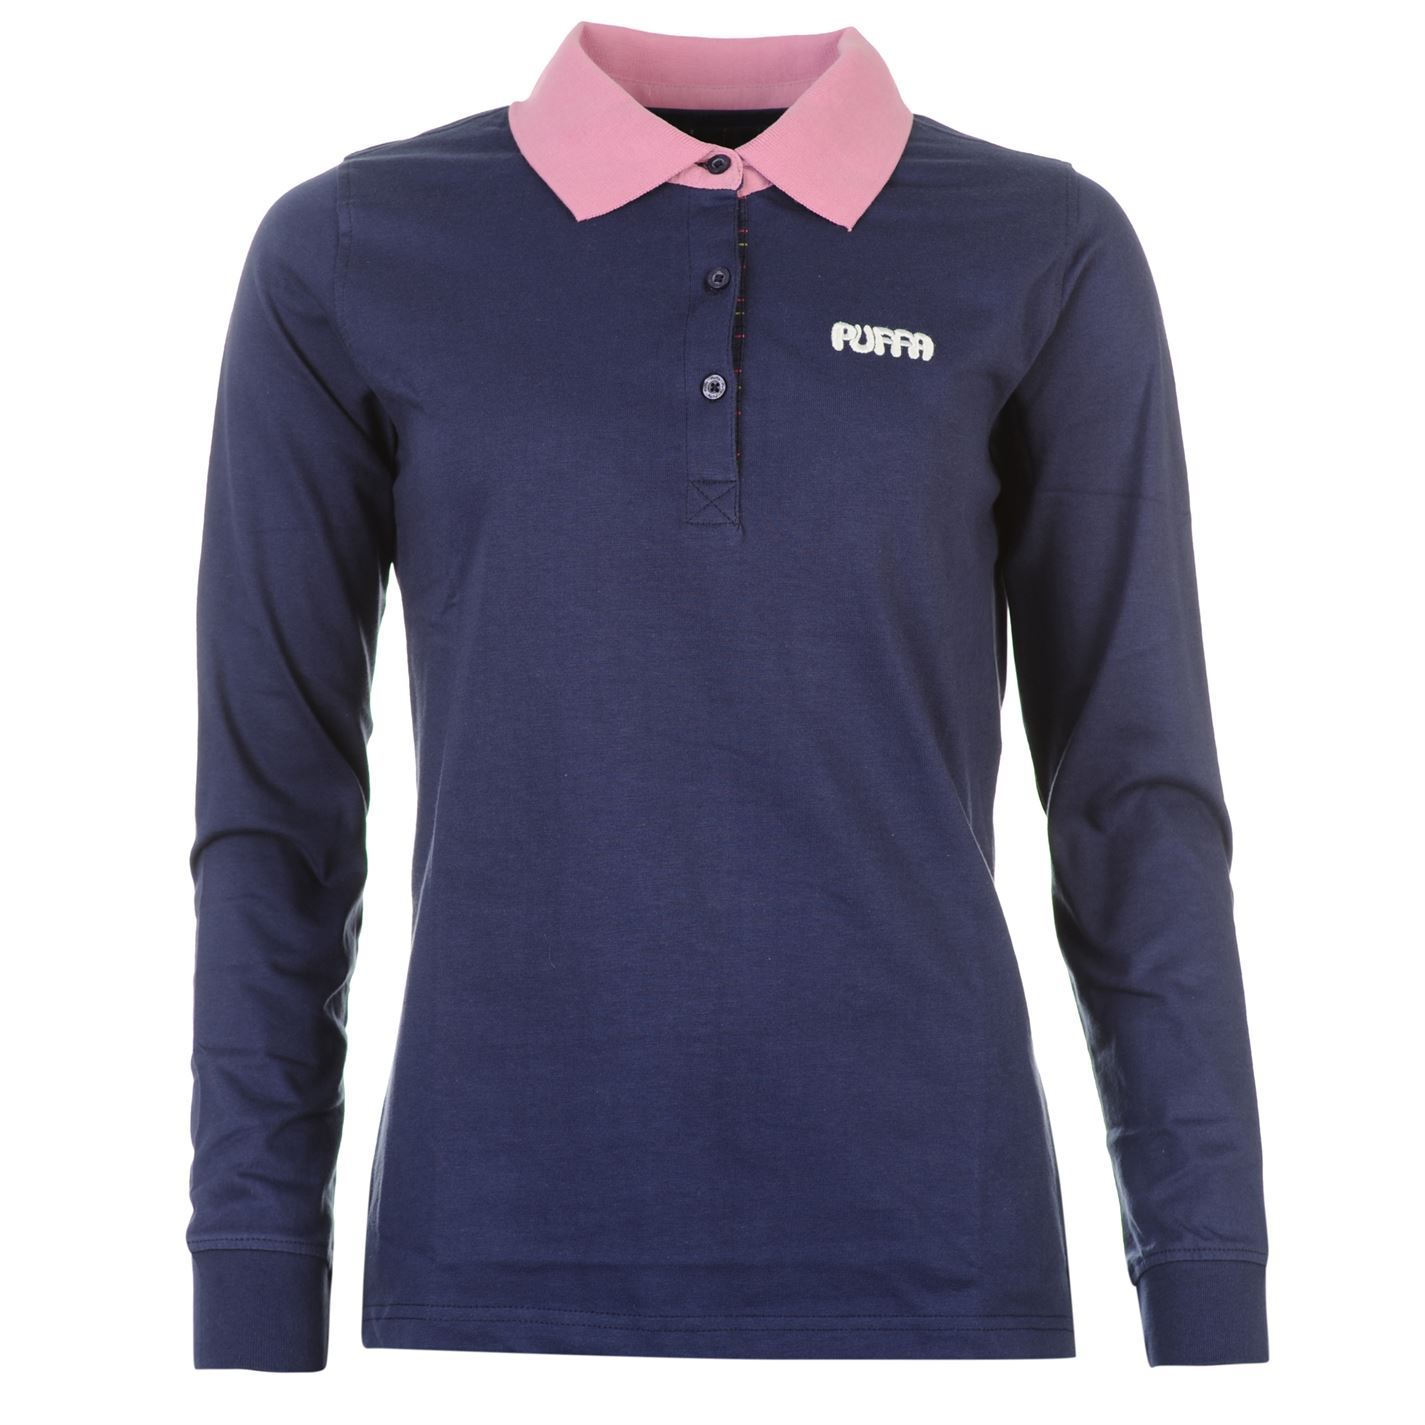 Puffa Womens Ladies Bennet Horse Riding Polo Shirt Long